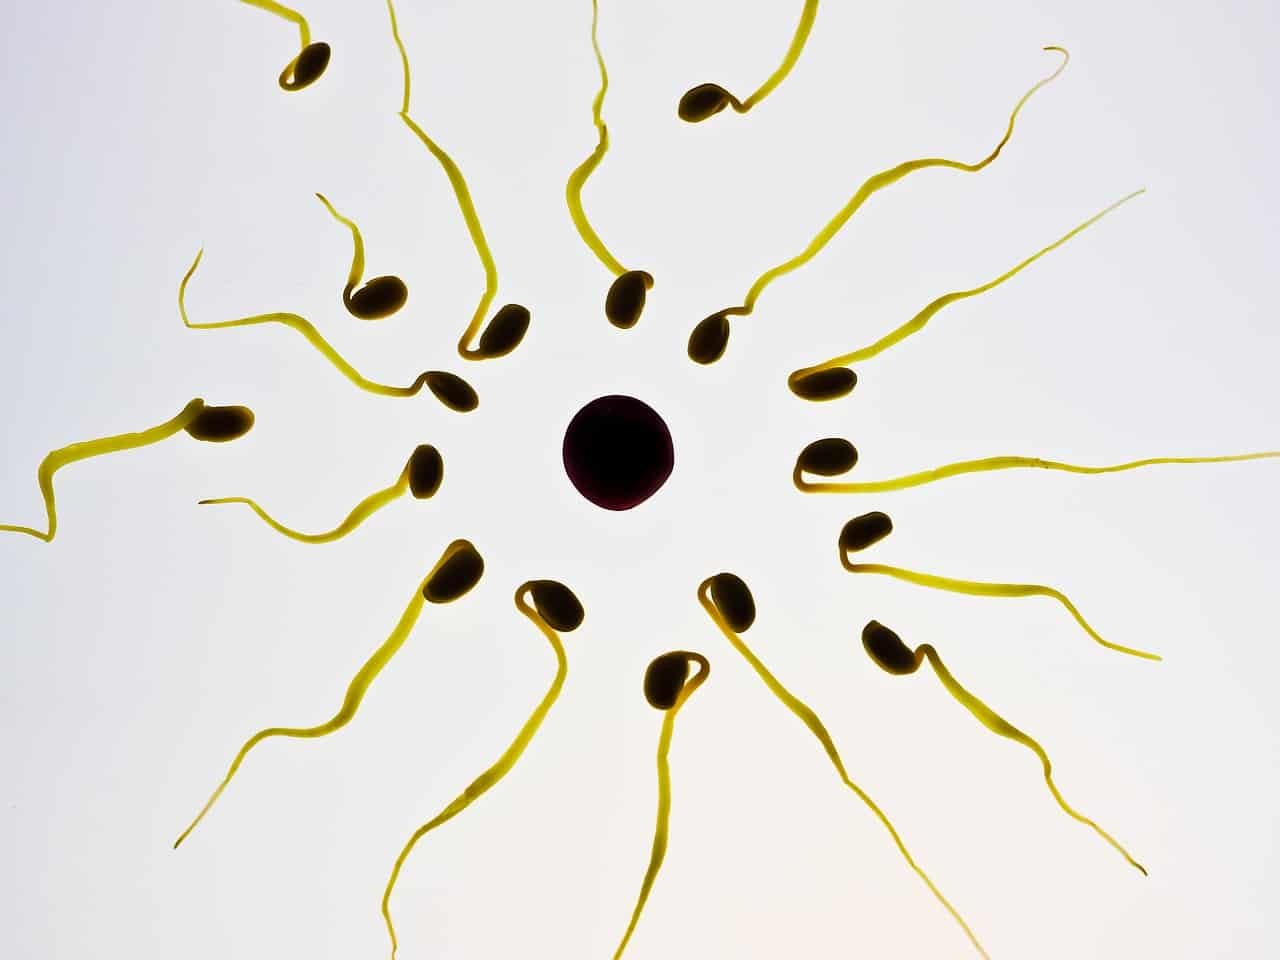 sperm cells microscope